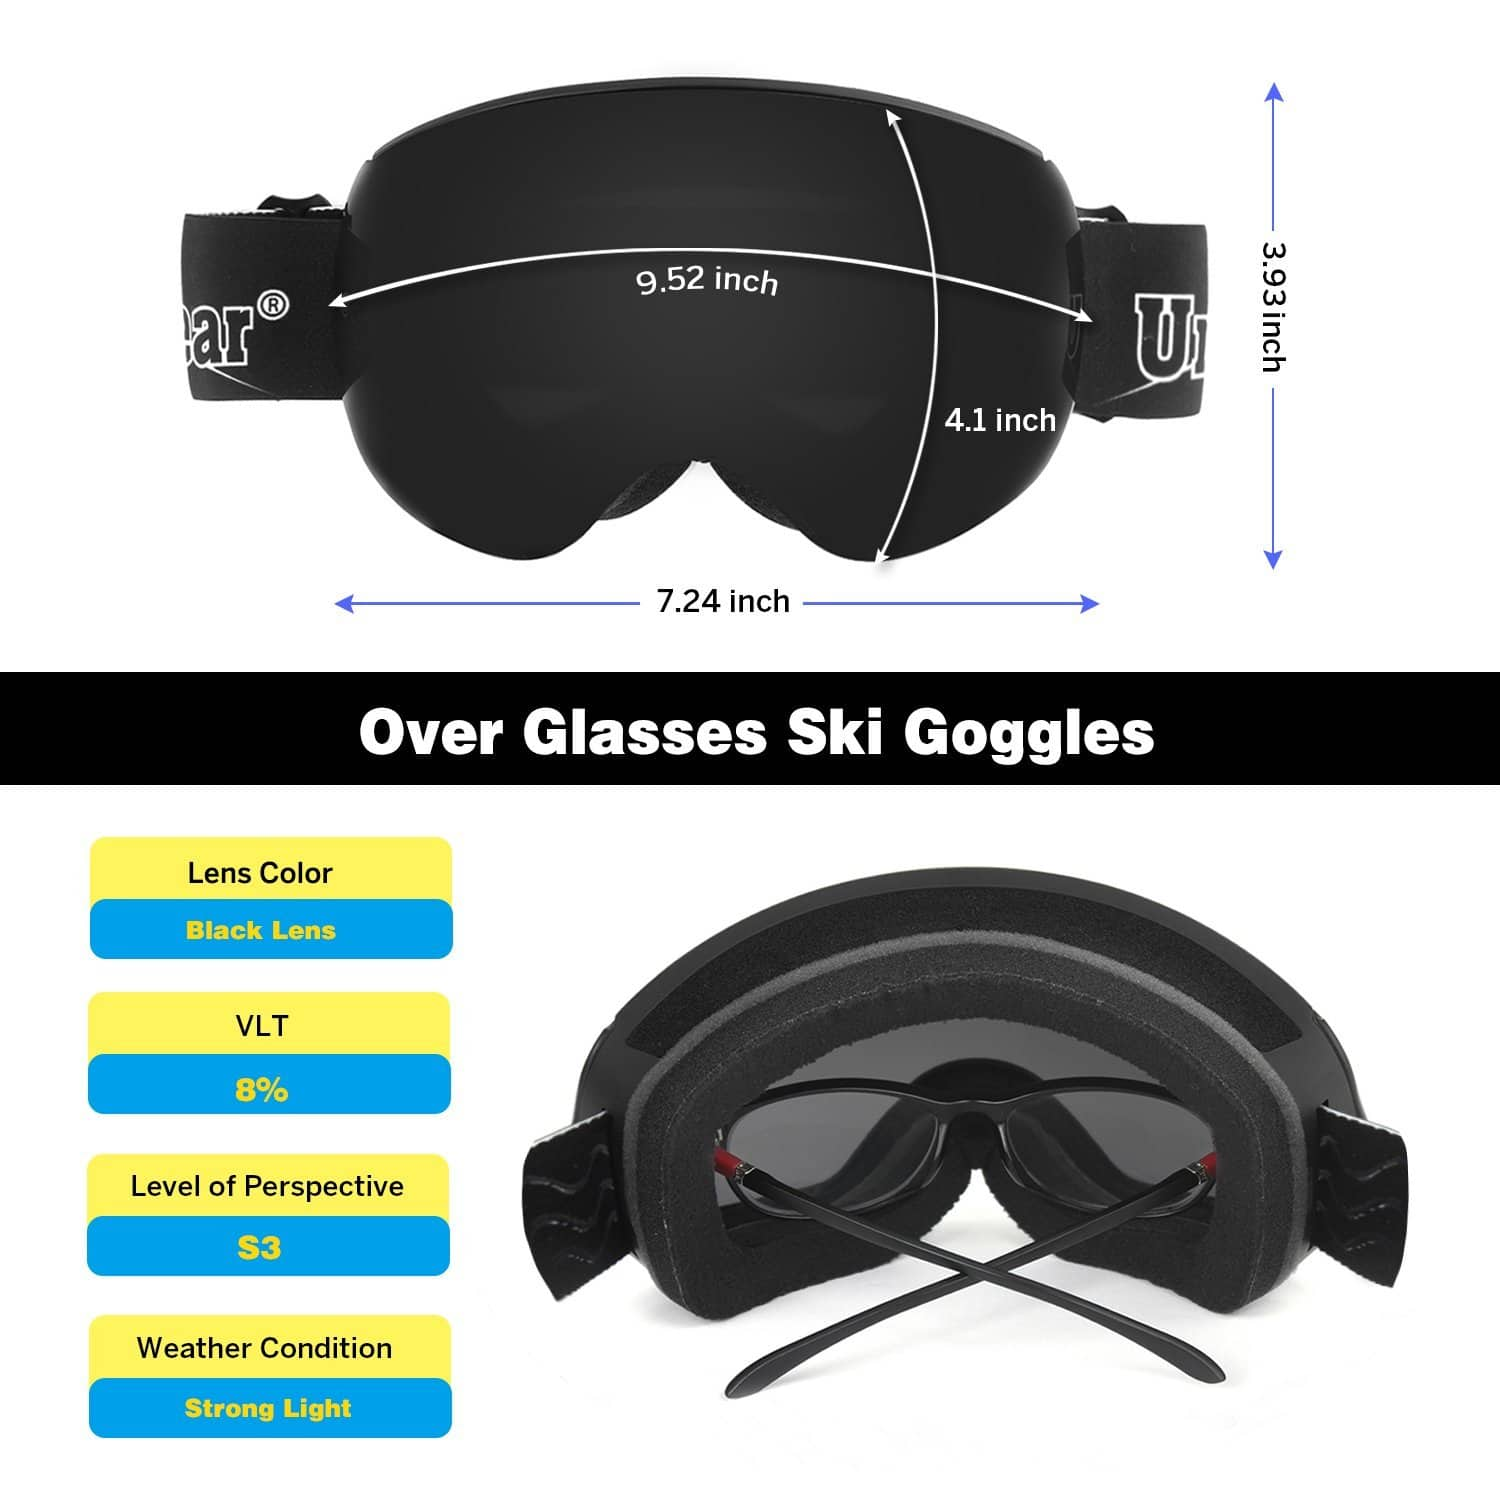 45% OFF for Unigear Anti-fog OTG Ski Goggles with Magnetic Interchangeable Lens and Protective Case – Black Lens & Blue Lens $23.64